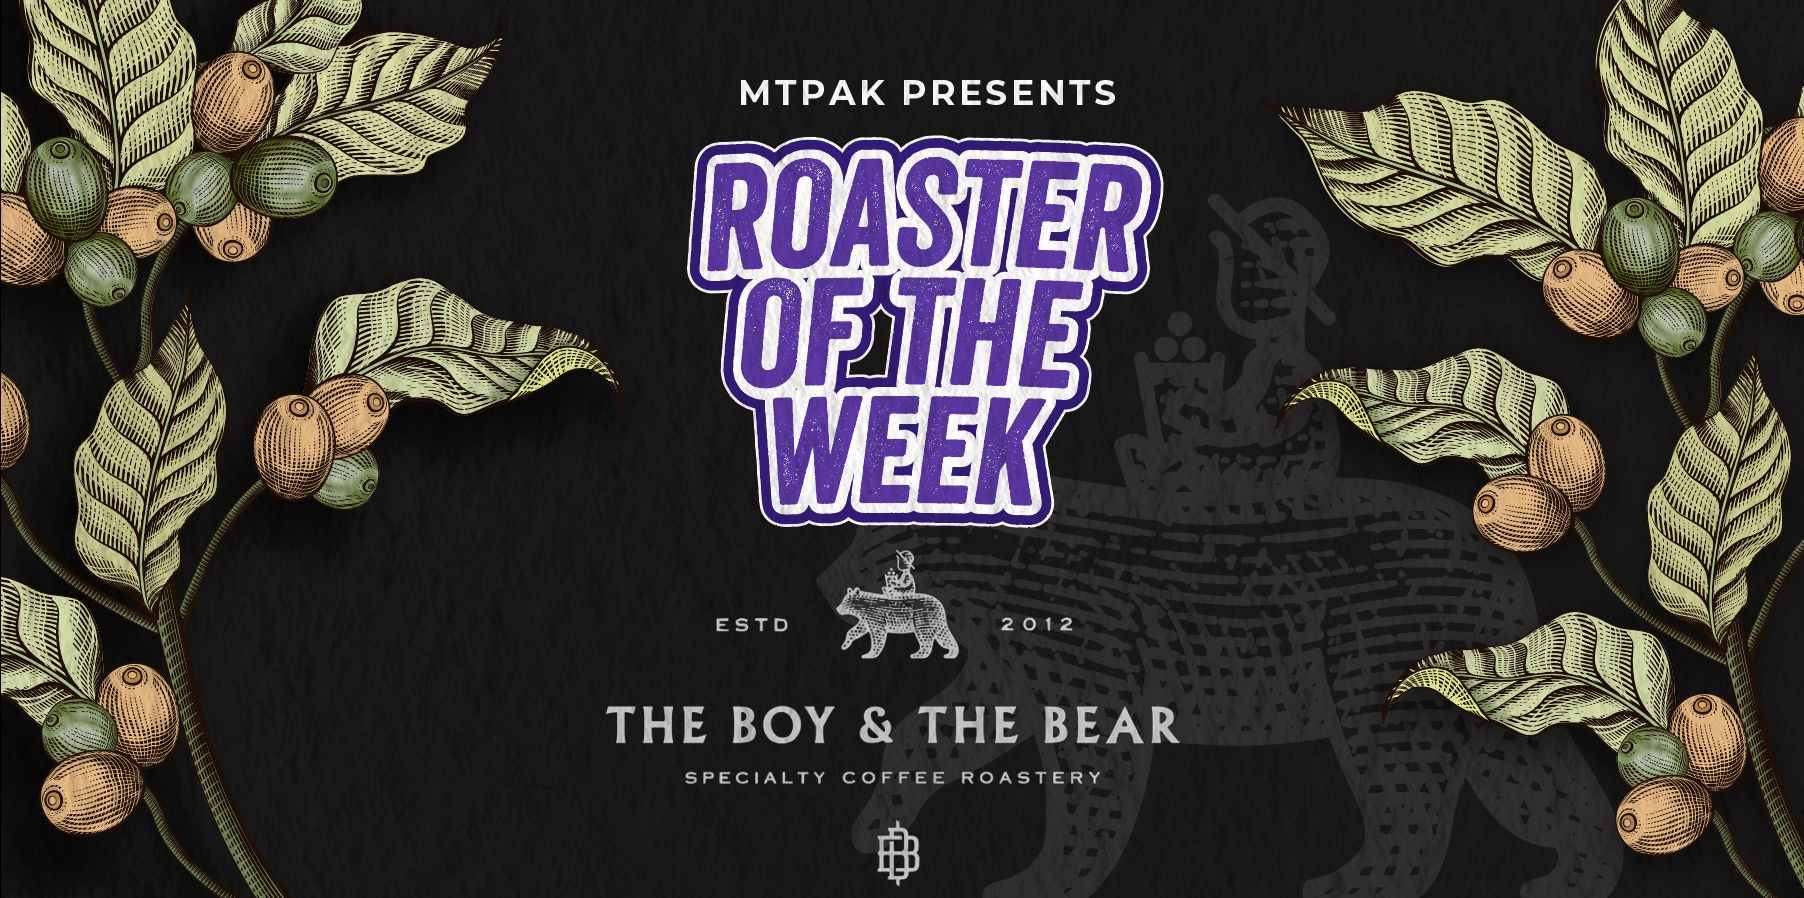 the boy & the bear roaster of the week